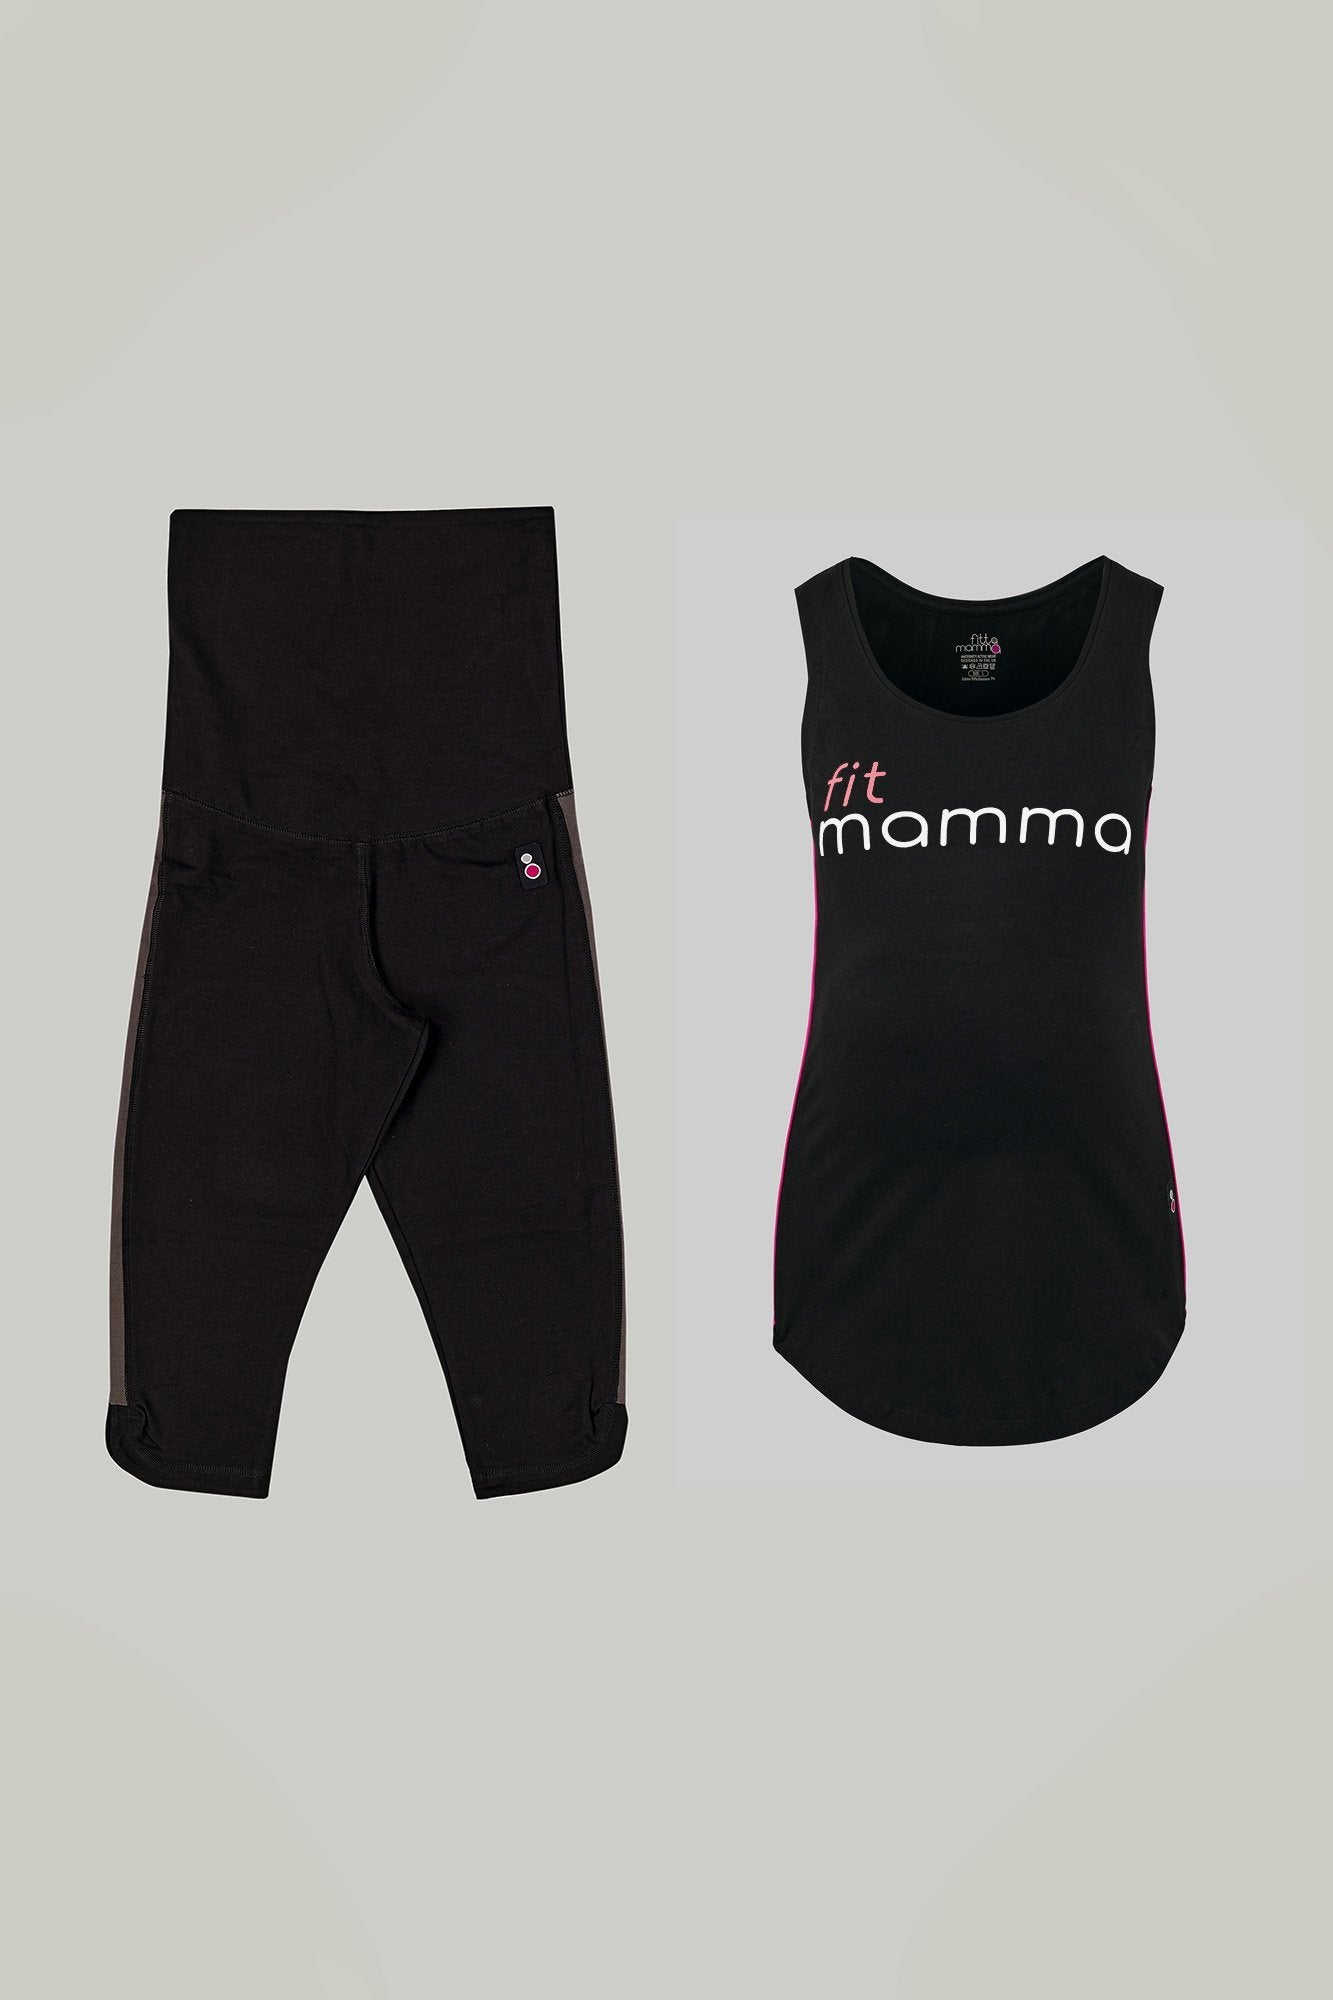 Fit Mamma Maternity Exercise Kit